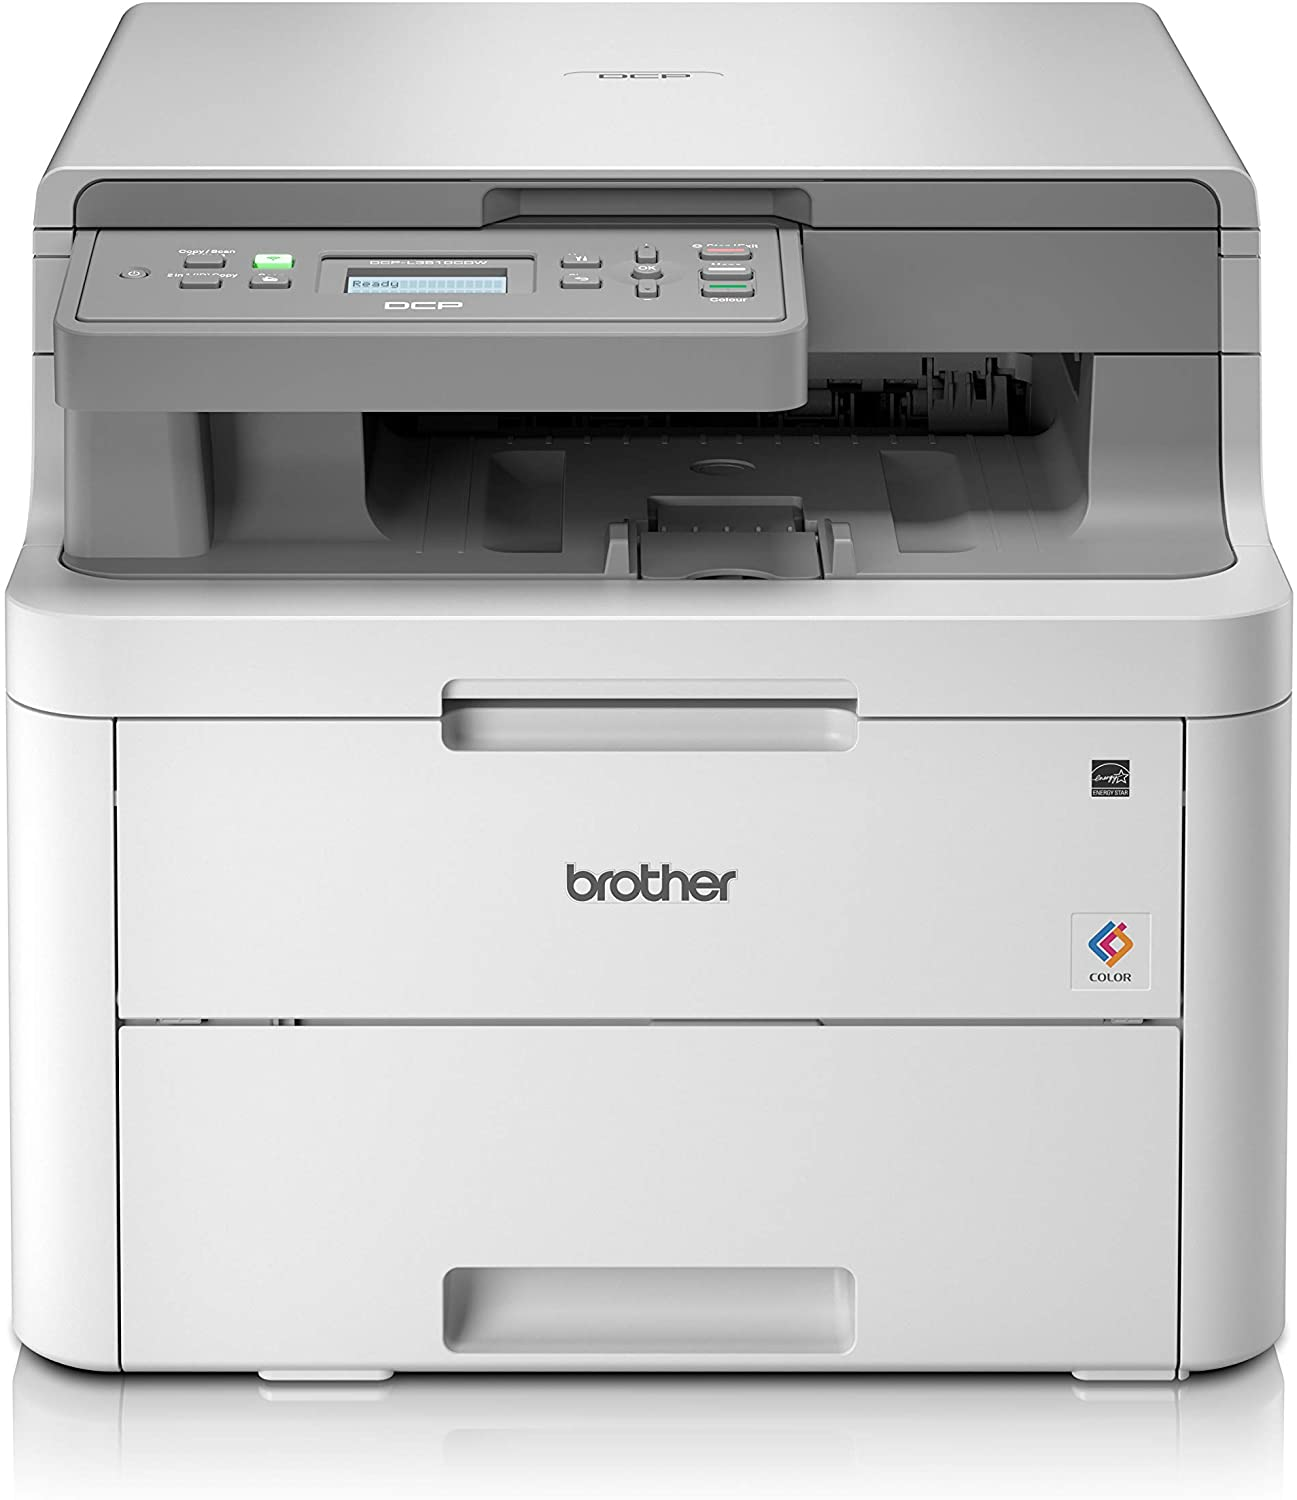 rother DCP-L3510CDW Colour Laser Printer - All-in-One, Wireless, Best Printer for imac uk reviews